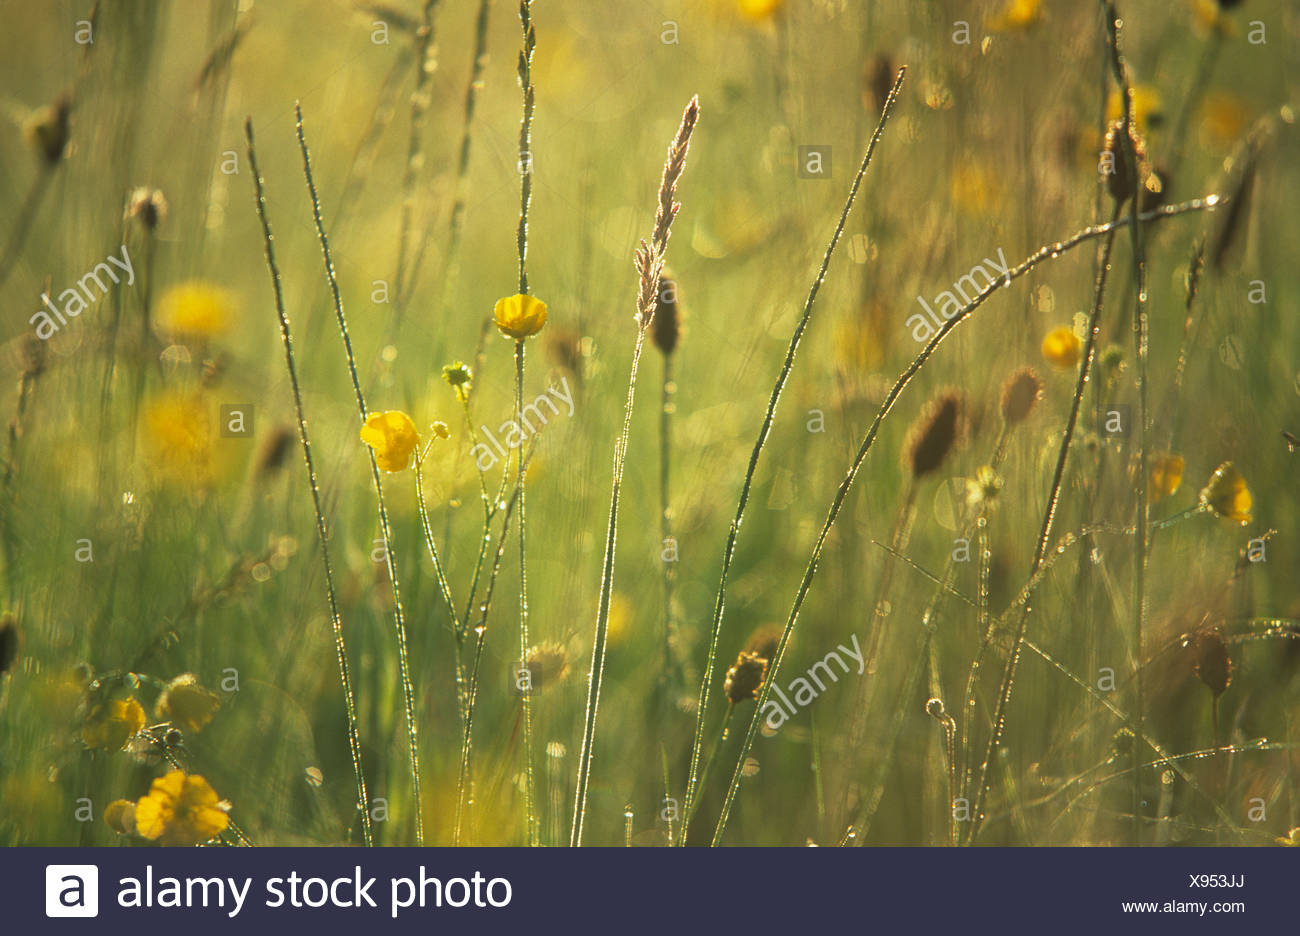 Upright grass seedheads on stems amongst yellow wild flowers in field. - Stock Image